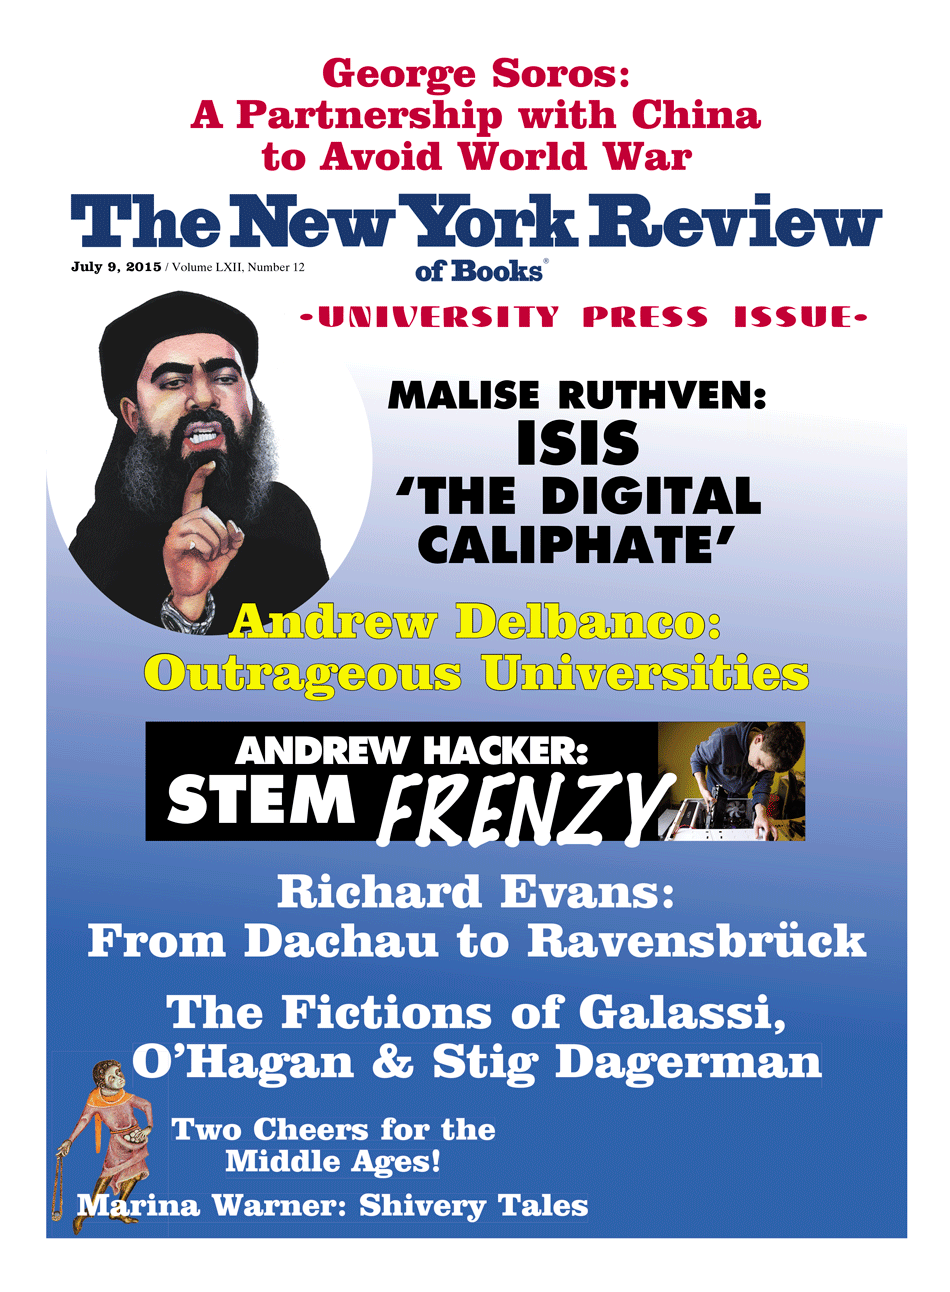 Image of the July 9, 2015 issue cover.